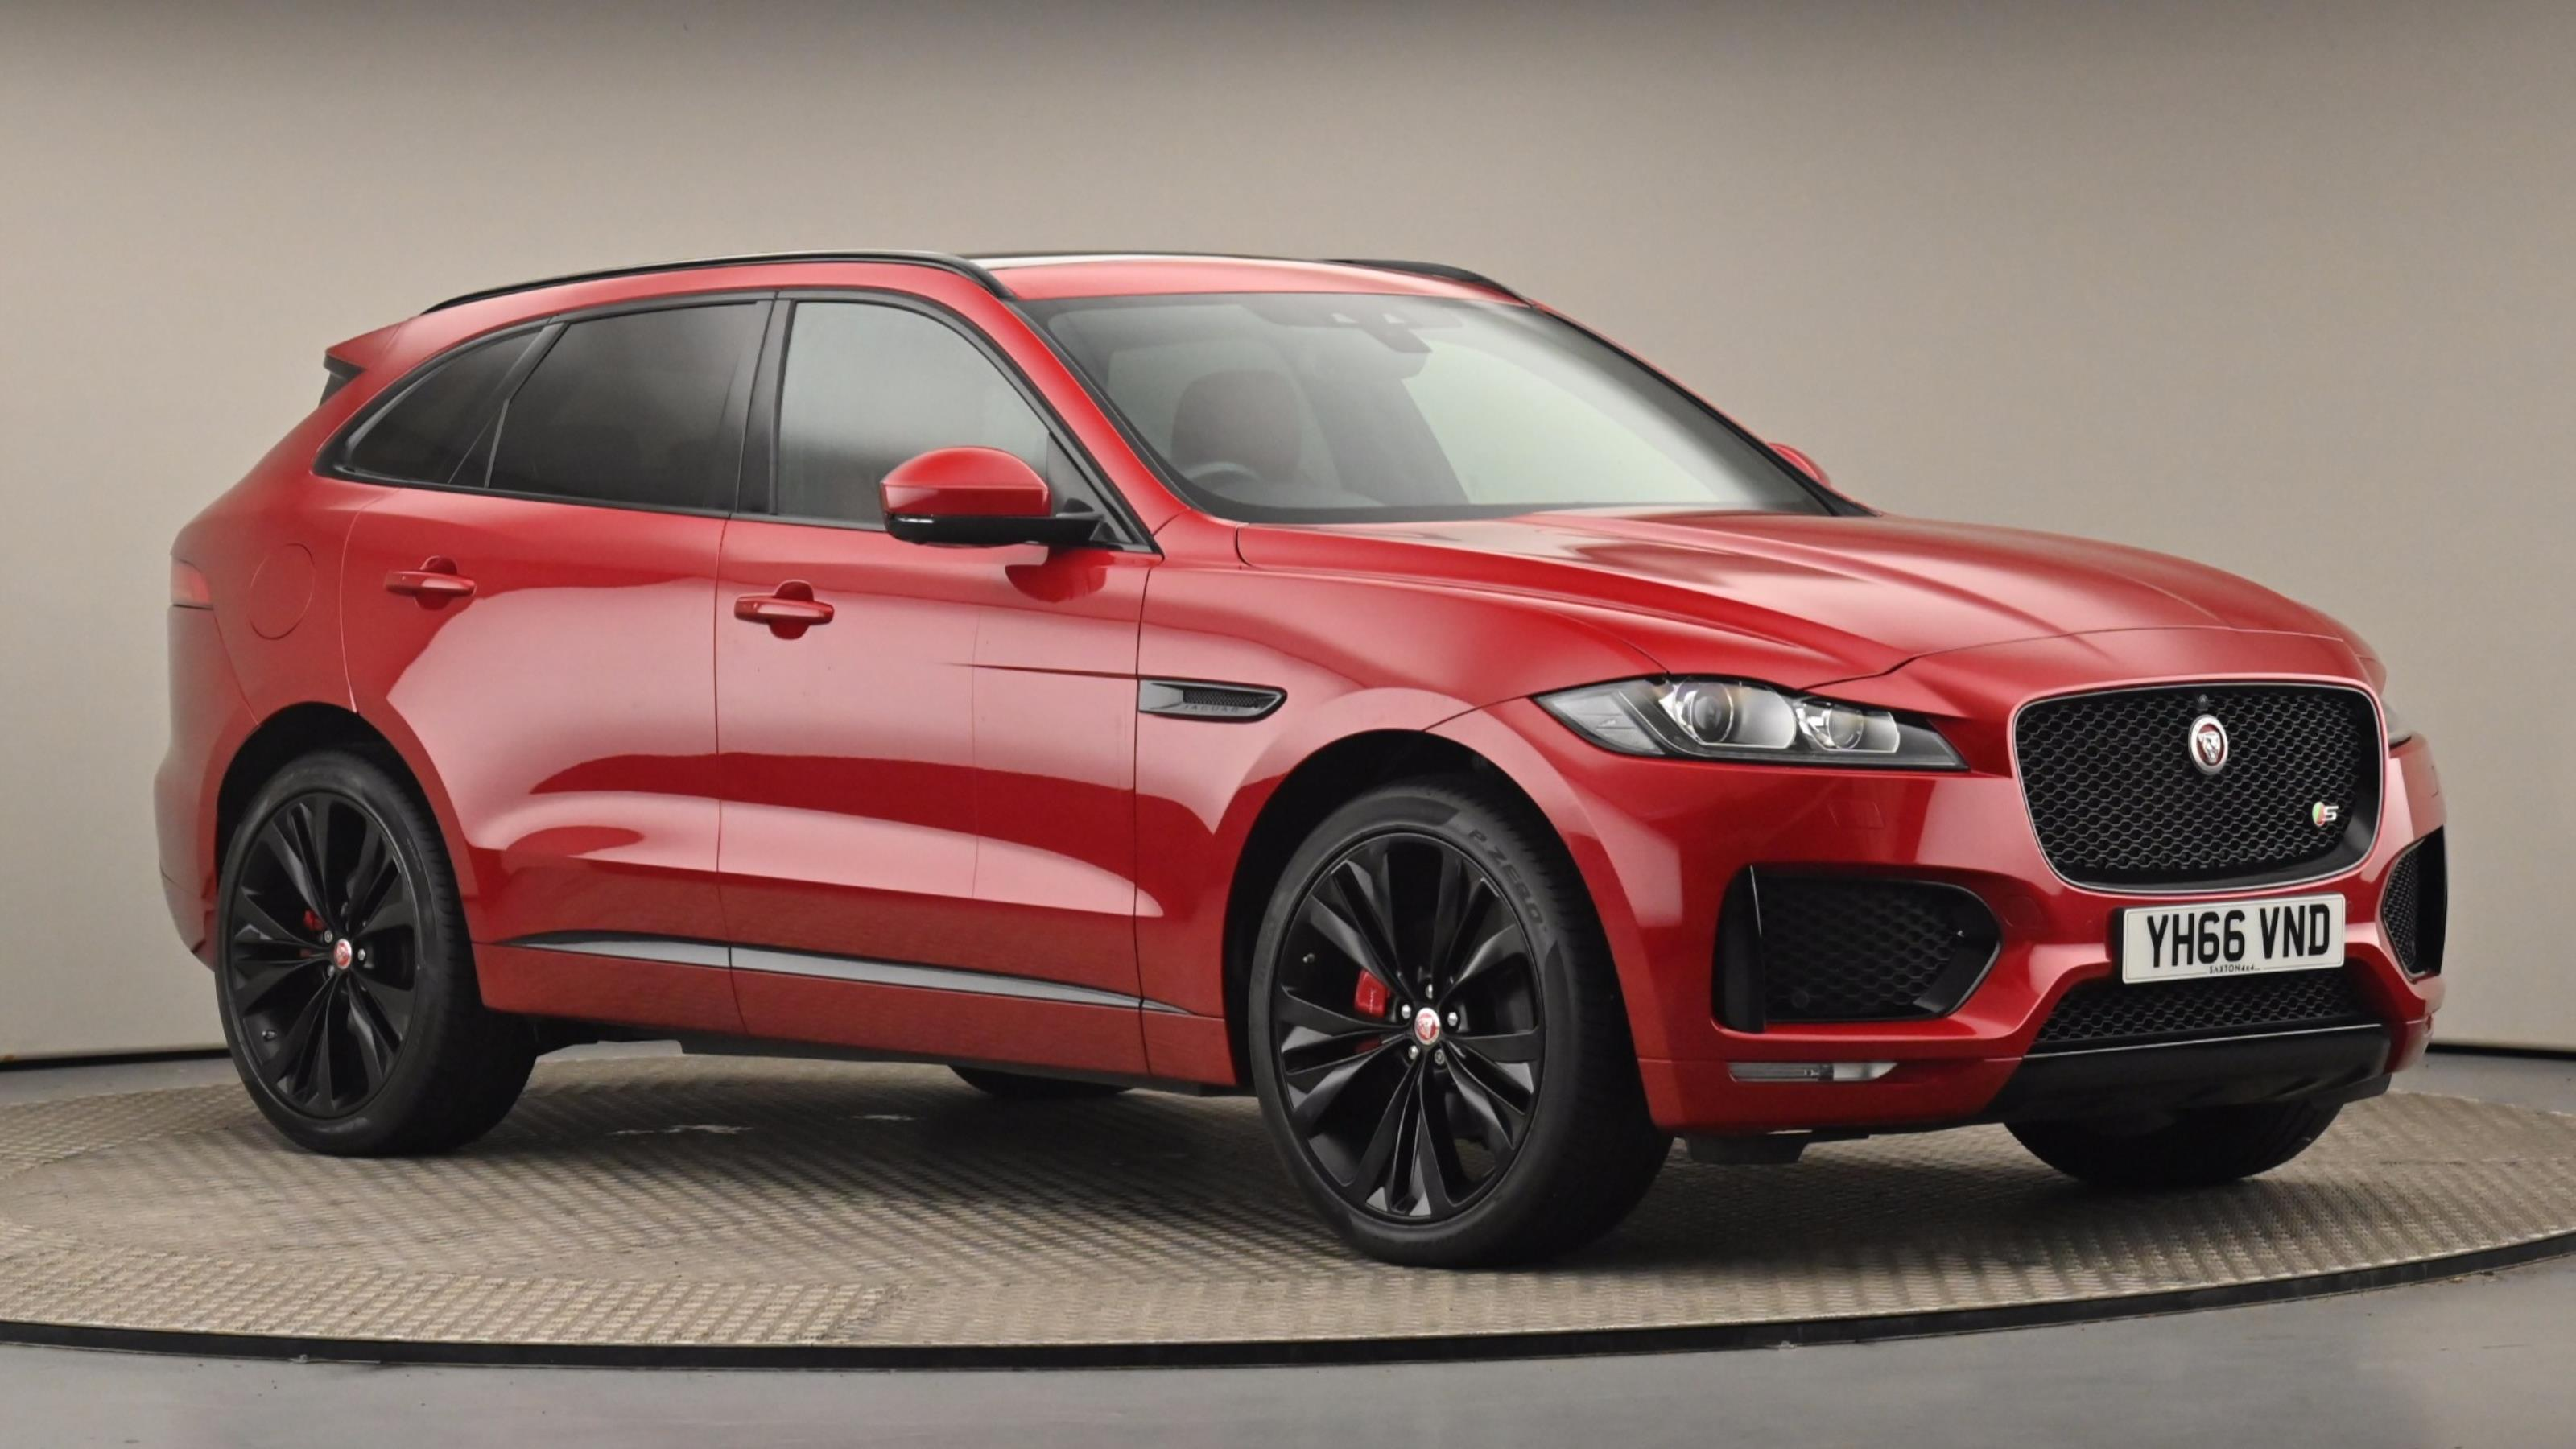 Used 2016 Jaguar F-PACE 3.0 Supercharged V6 S 5dr Auto AWD RED at Saxton4x4